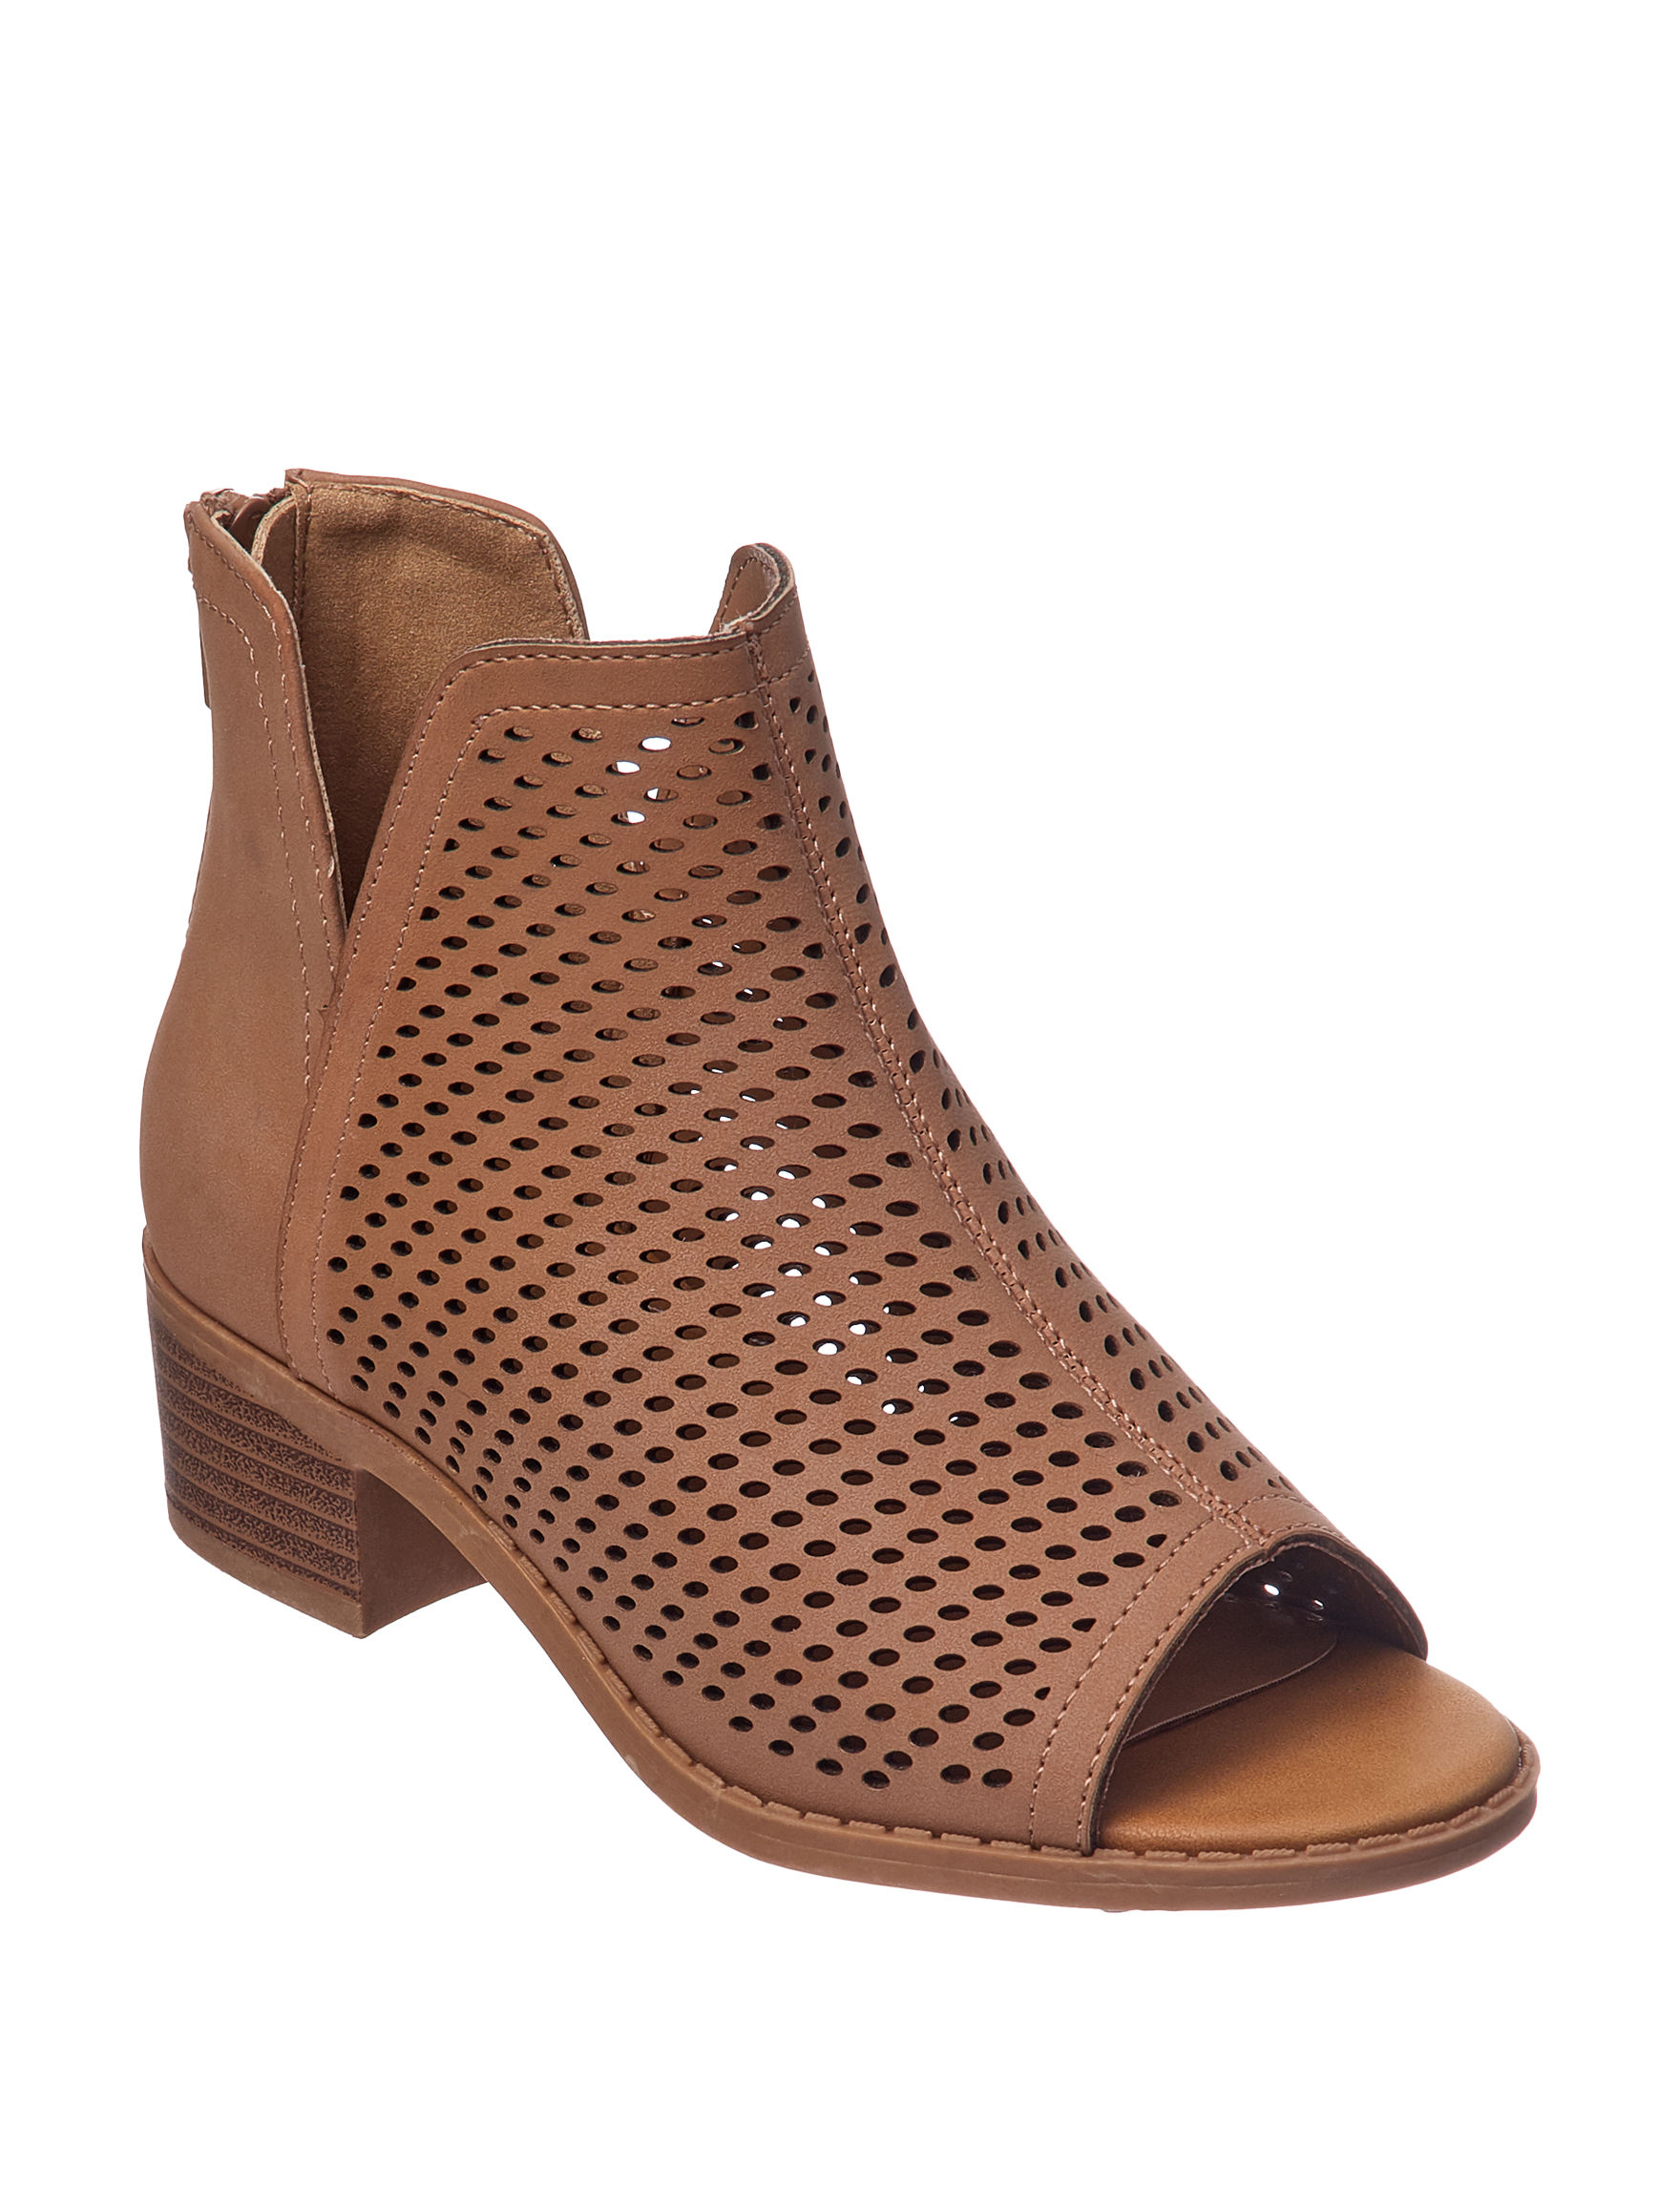 Sugar Tan Ankle Boots & Booties